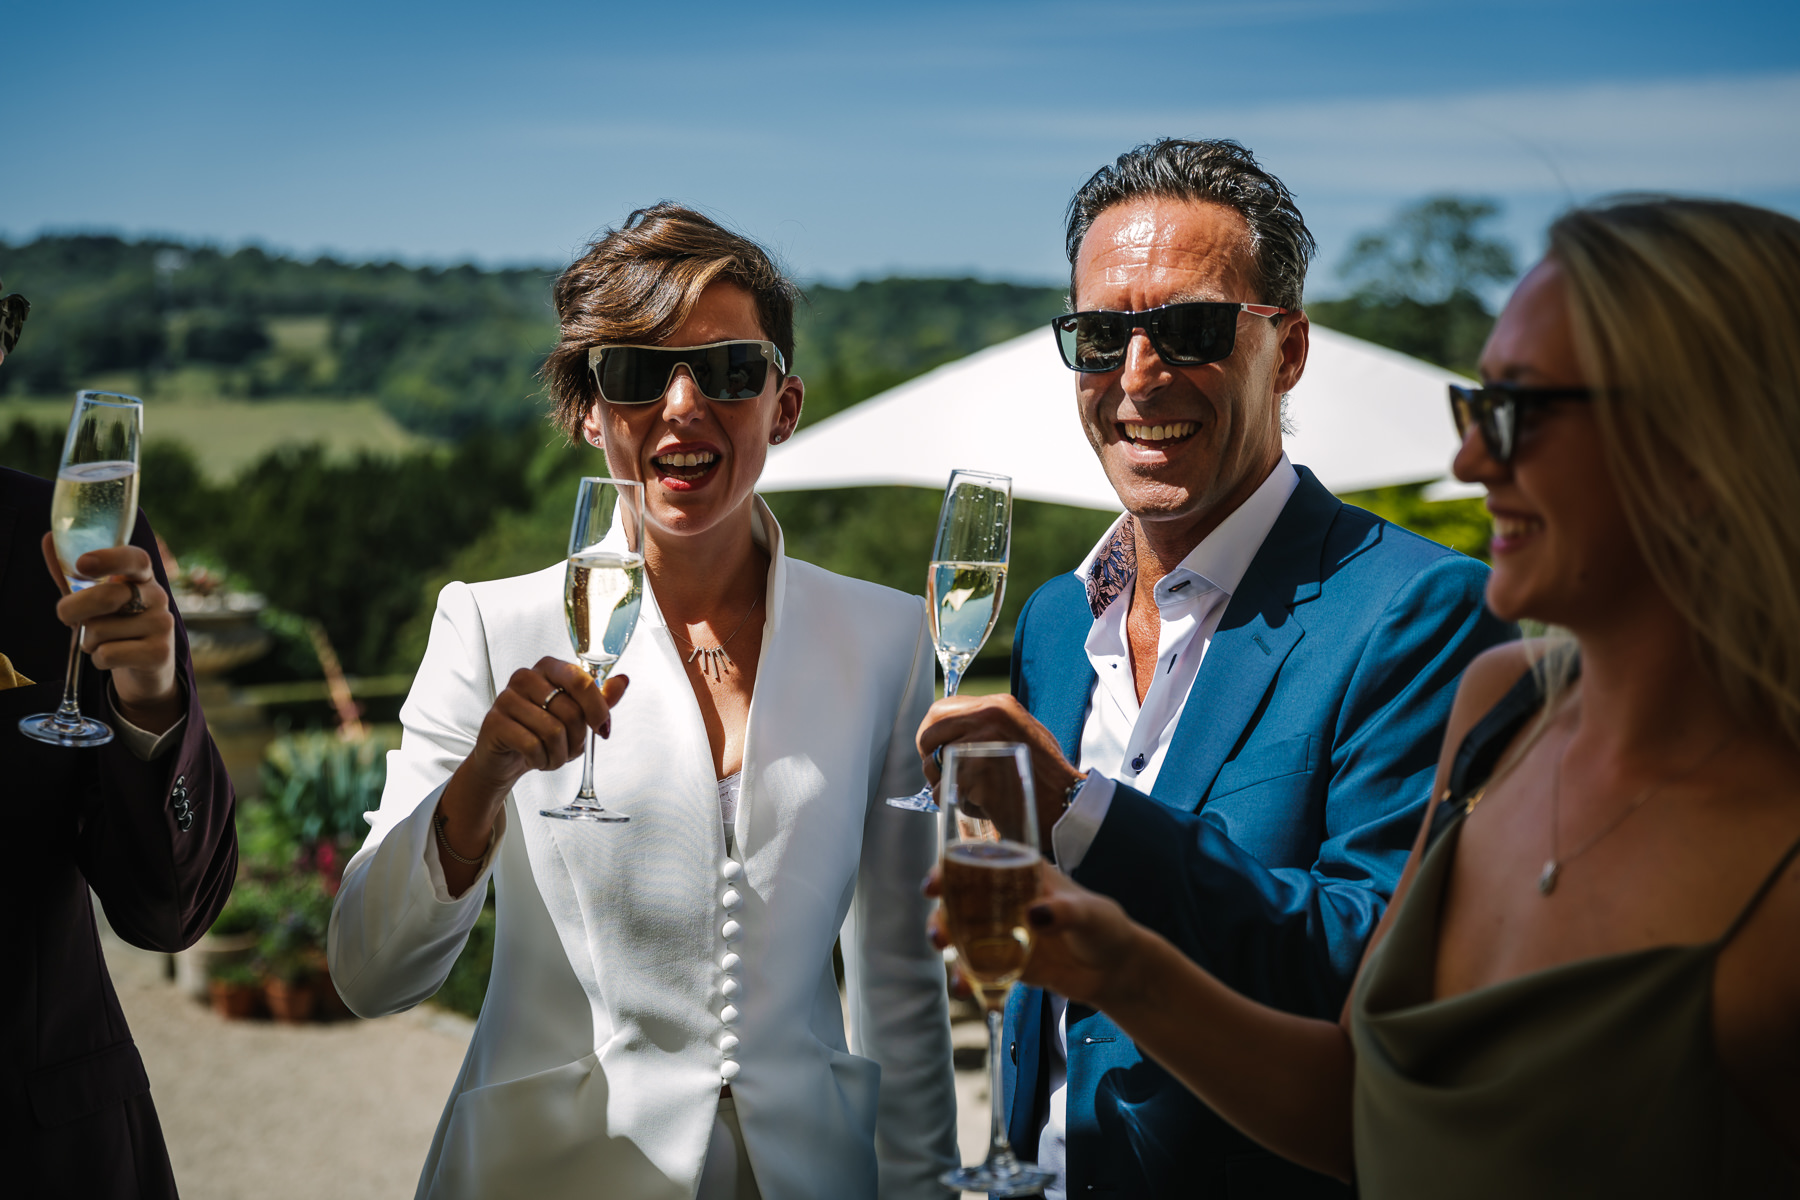 just married toast champagne natural authentic documentary wedding photo bride groom couple beaverbrook surrey hills leatherhead register office wedding photographer